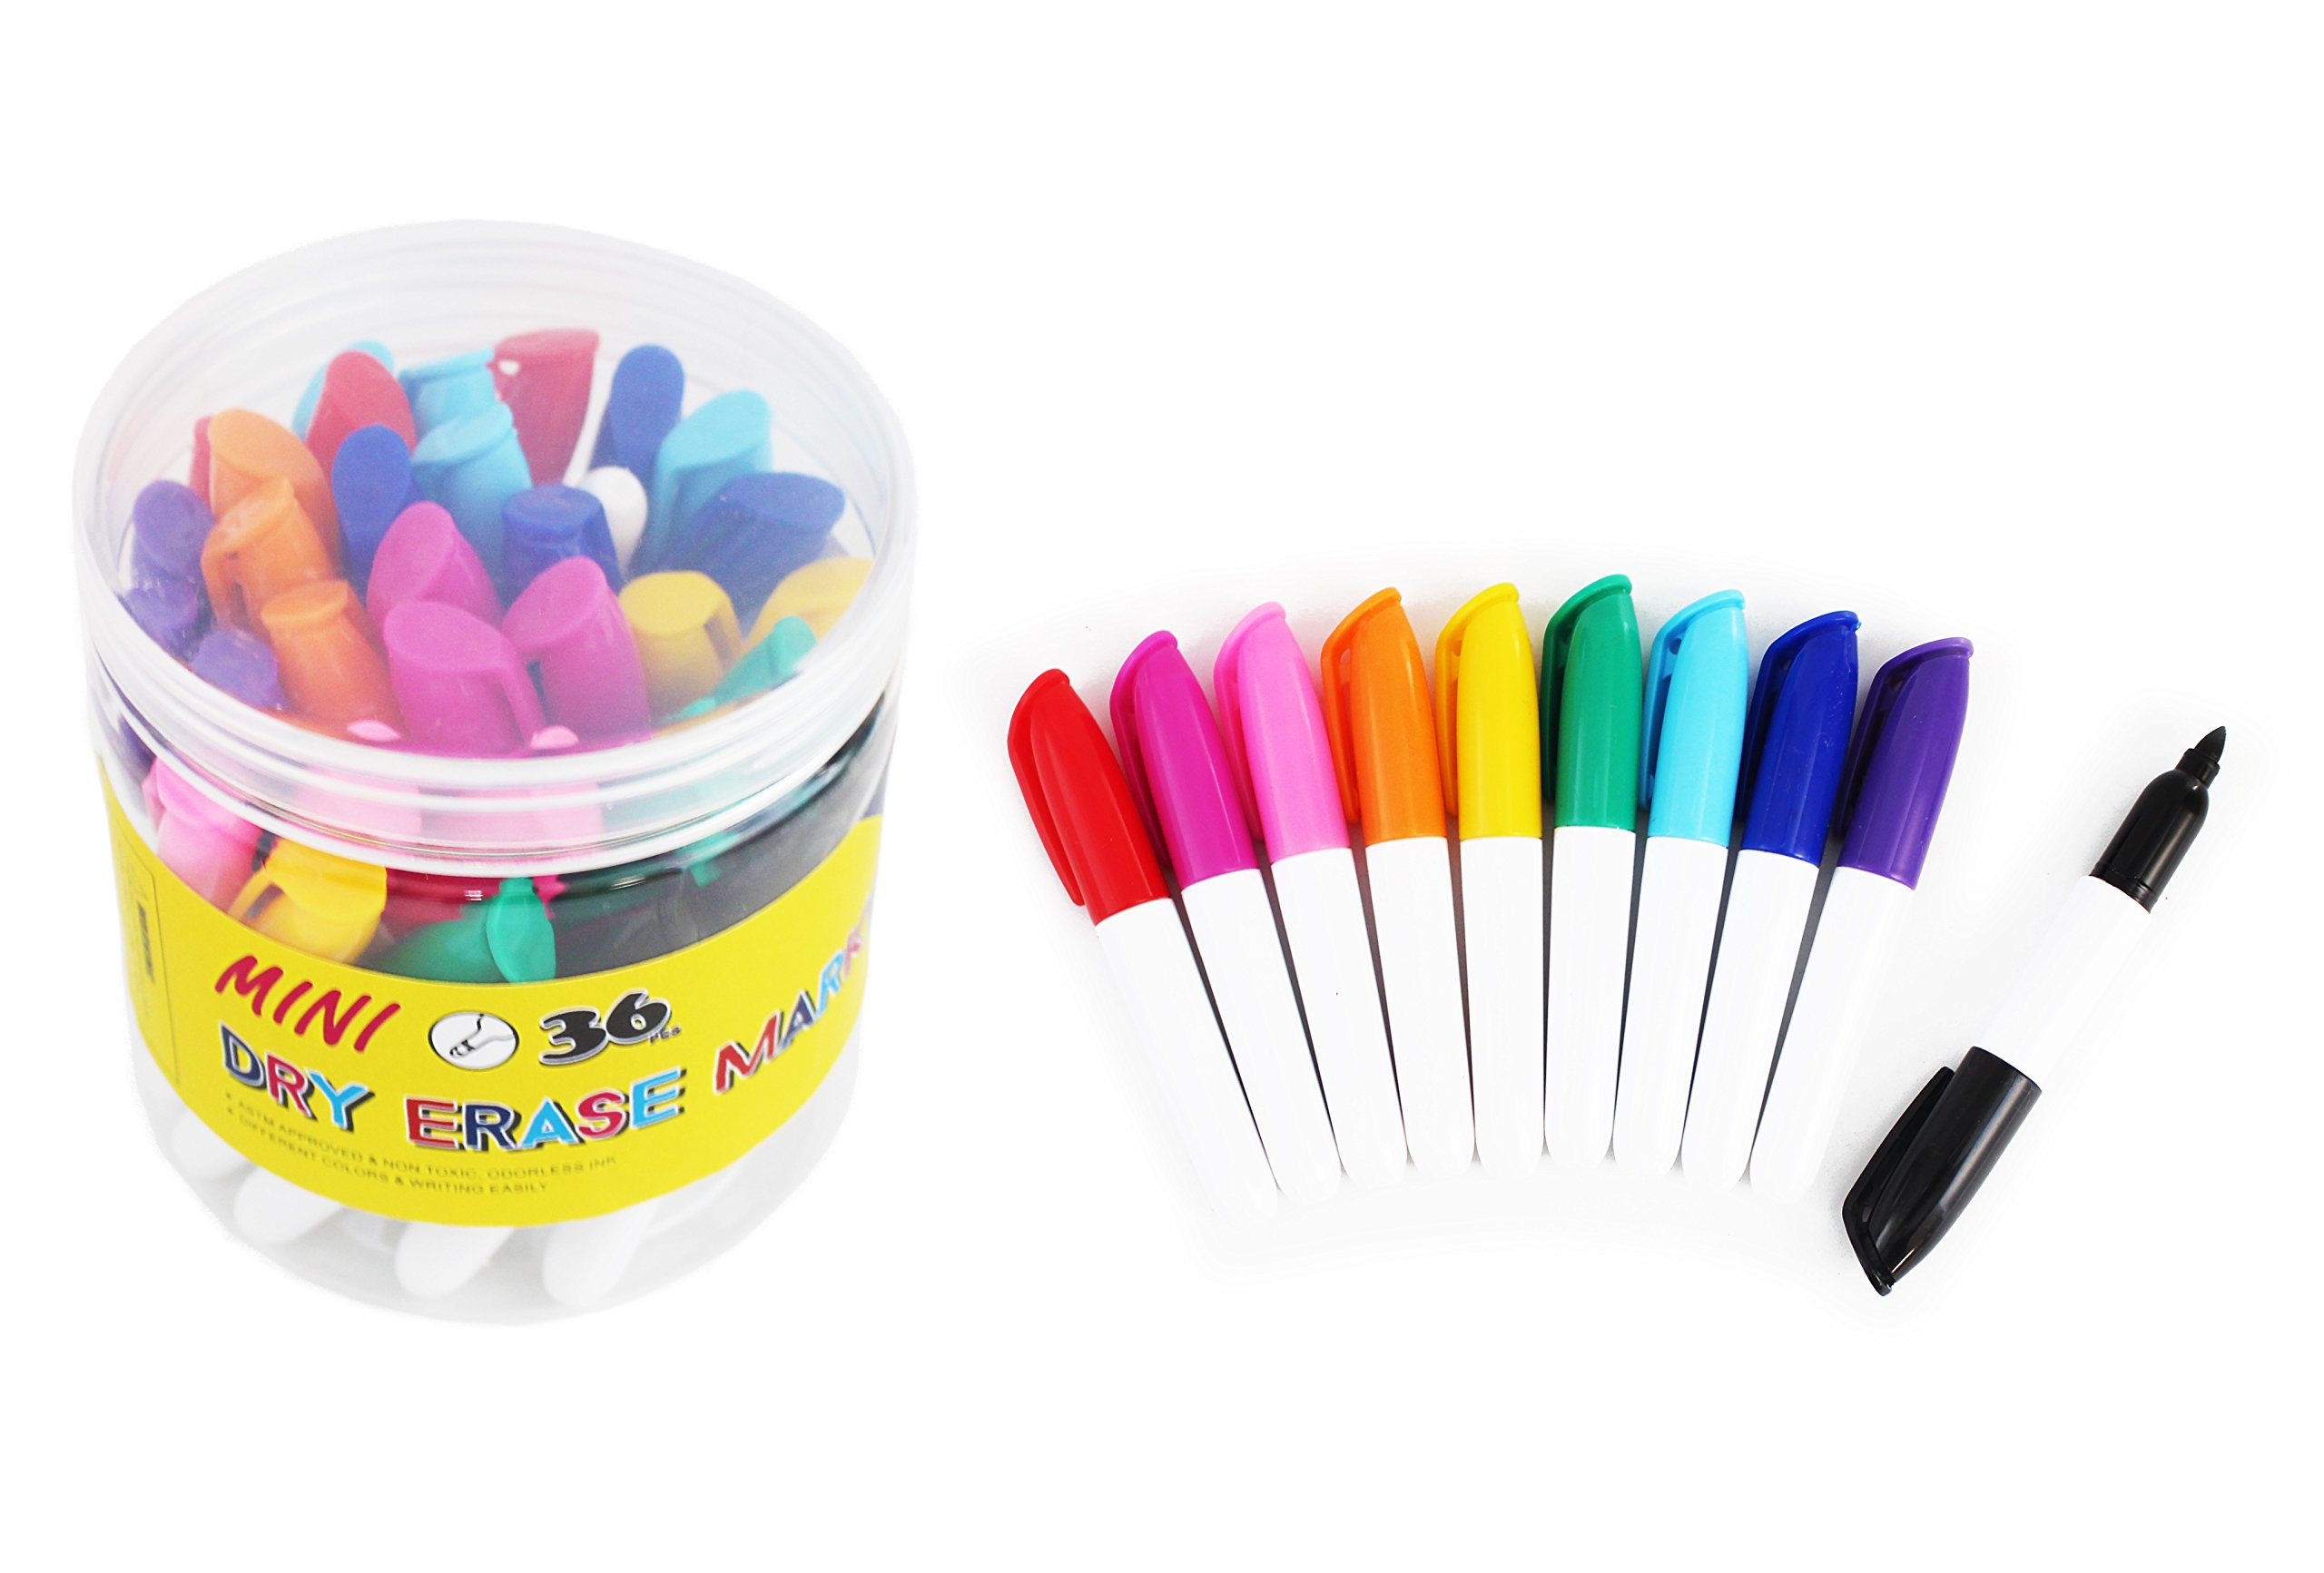 SKKSTATIONERY 36-Pcs Mini Dry Erase Markers, Whiteboard Markers, Marker Pens 3.5'', Markers